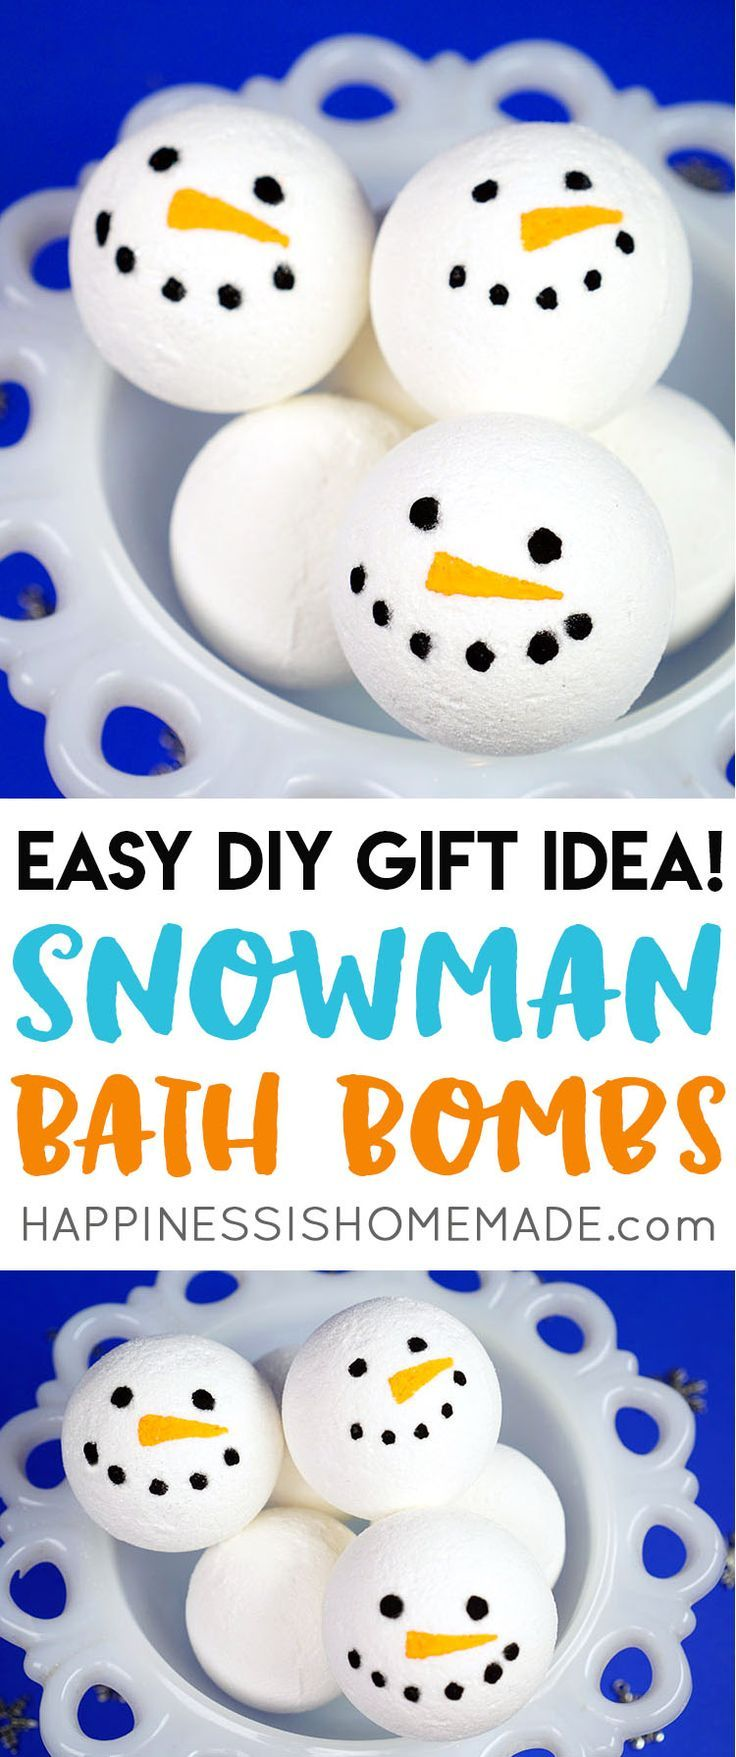 Want to learn how to make bath bombs? This simple DIY snowman bath bomb recipe is perfect for beginners and a great idea for holiday gift giving! via @hiHomemadeBlog